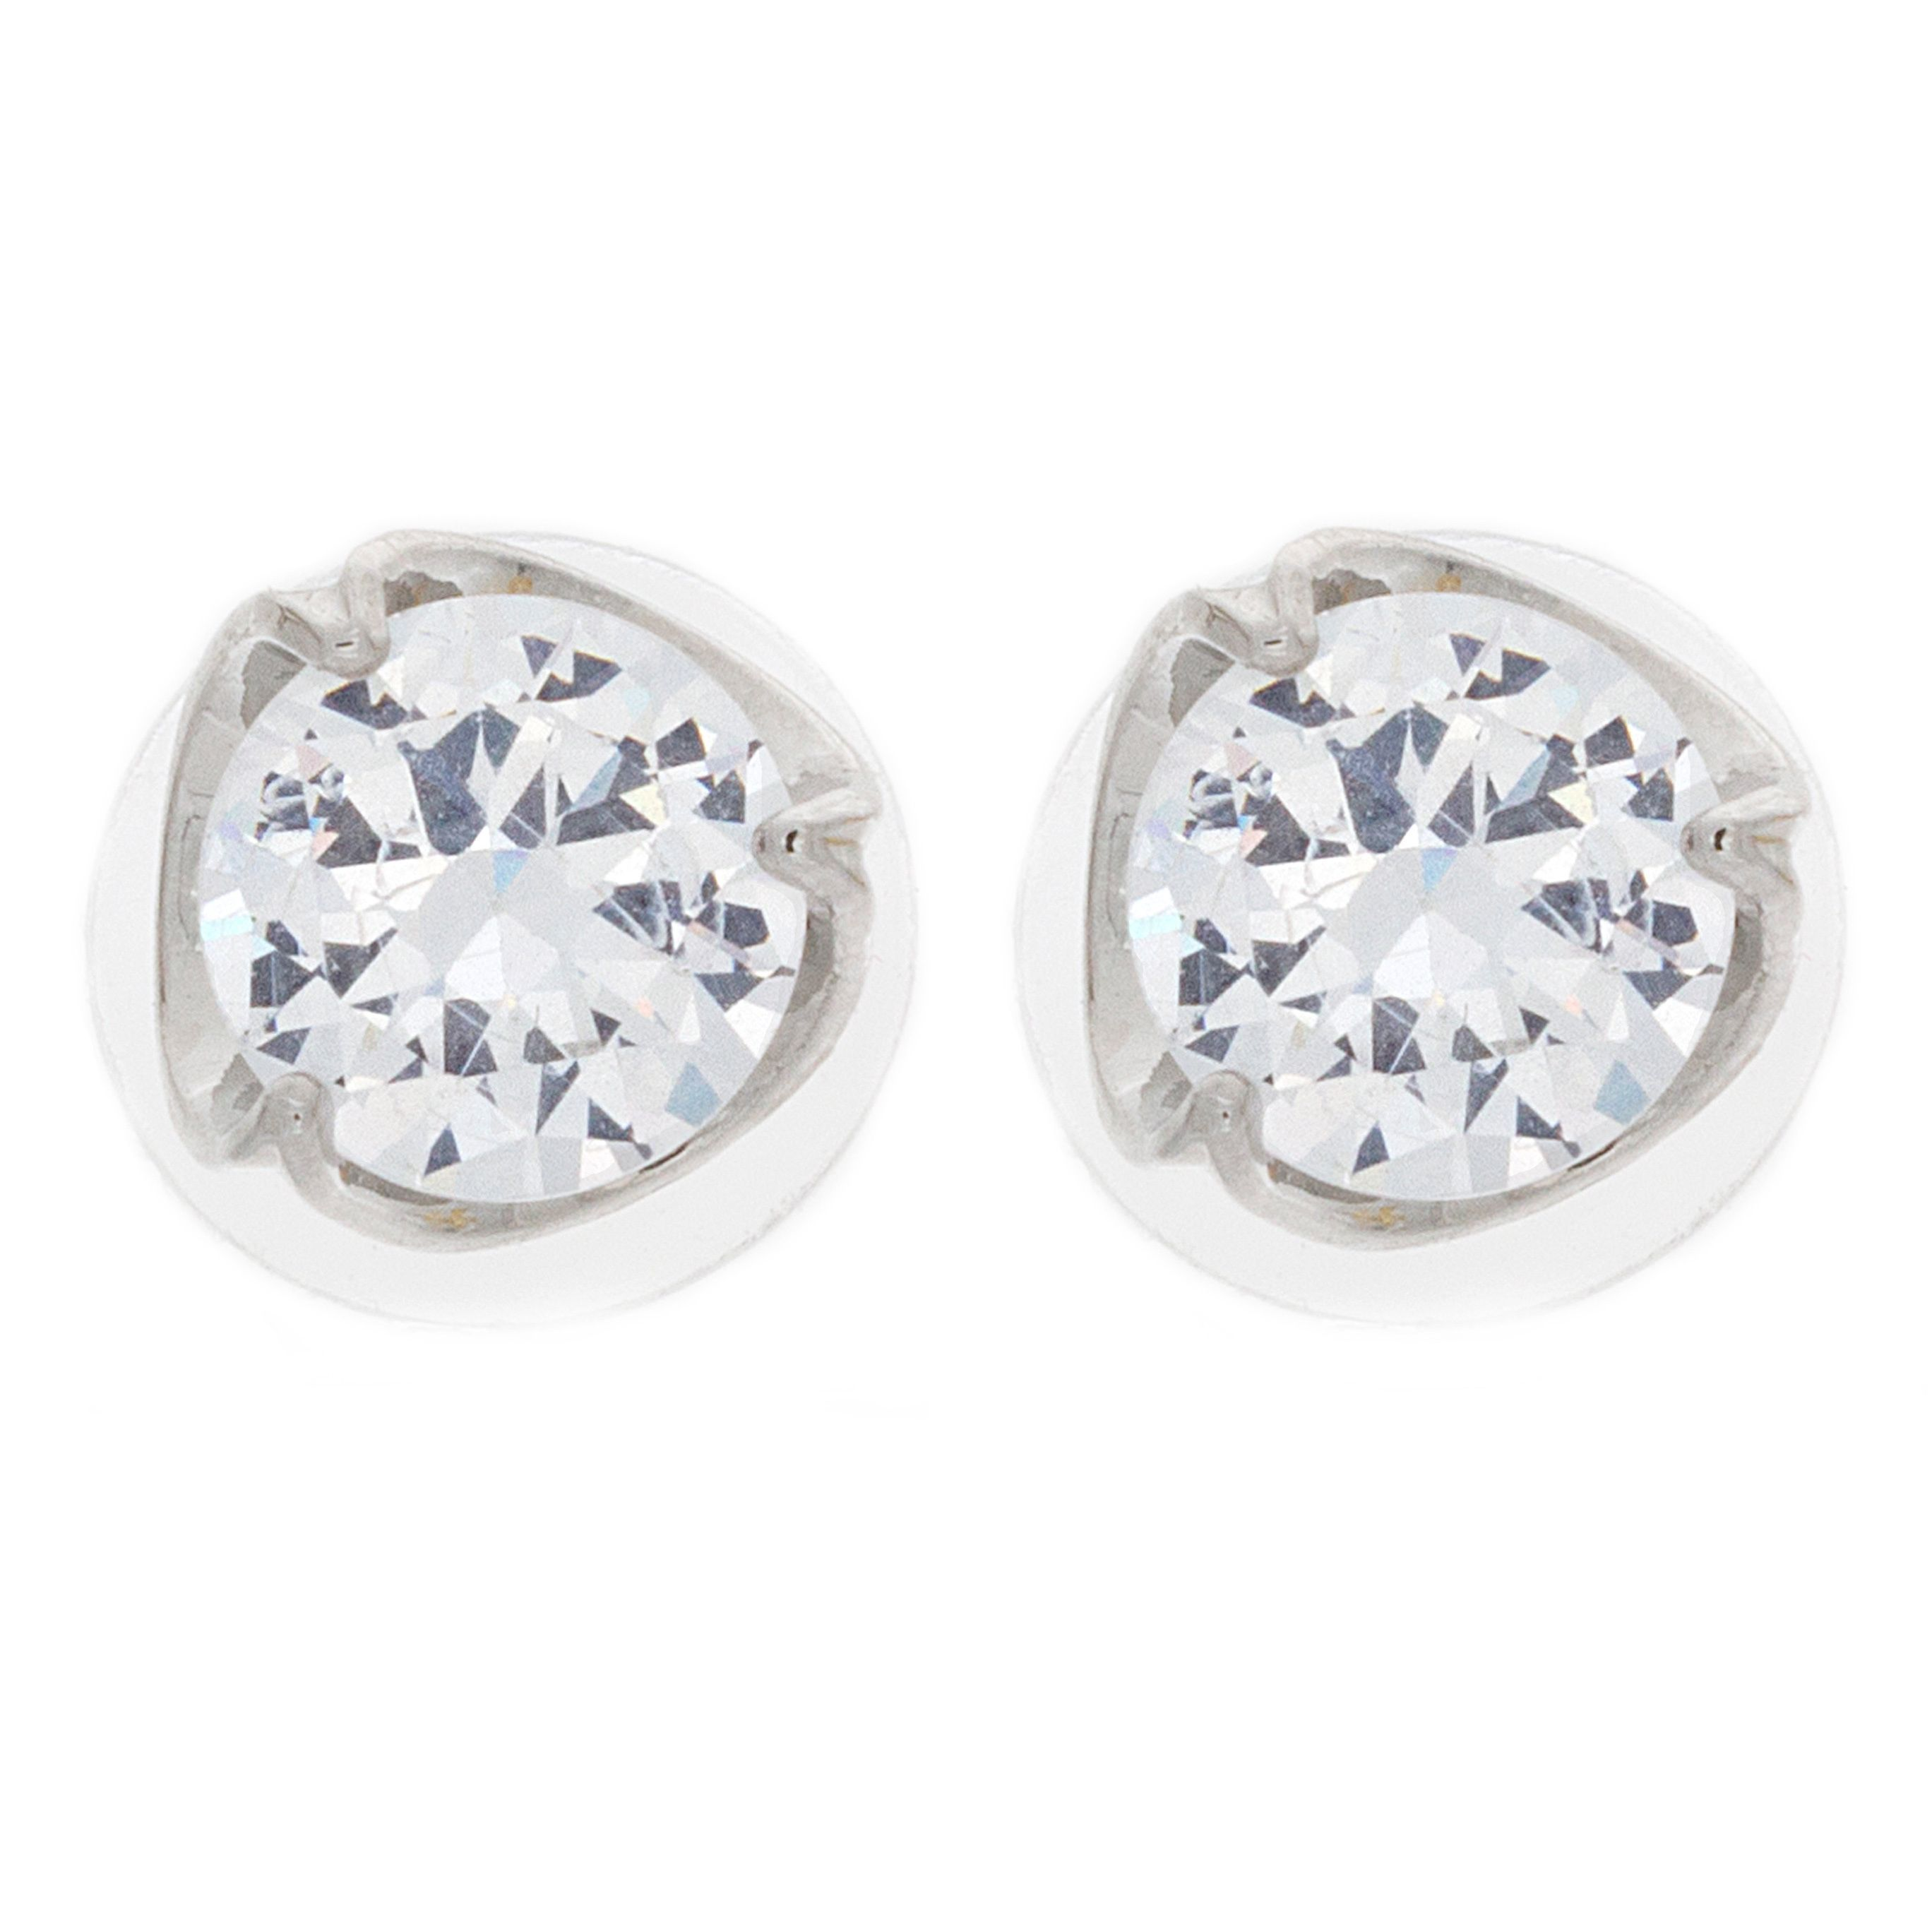 fallwinter moda georgian solitaire paste large by operandi earrings versace silver loading foundwell